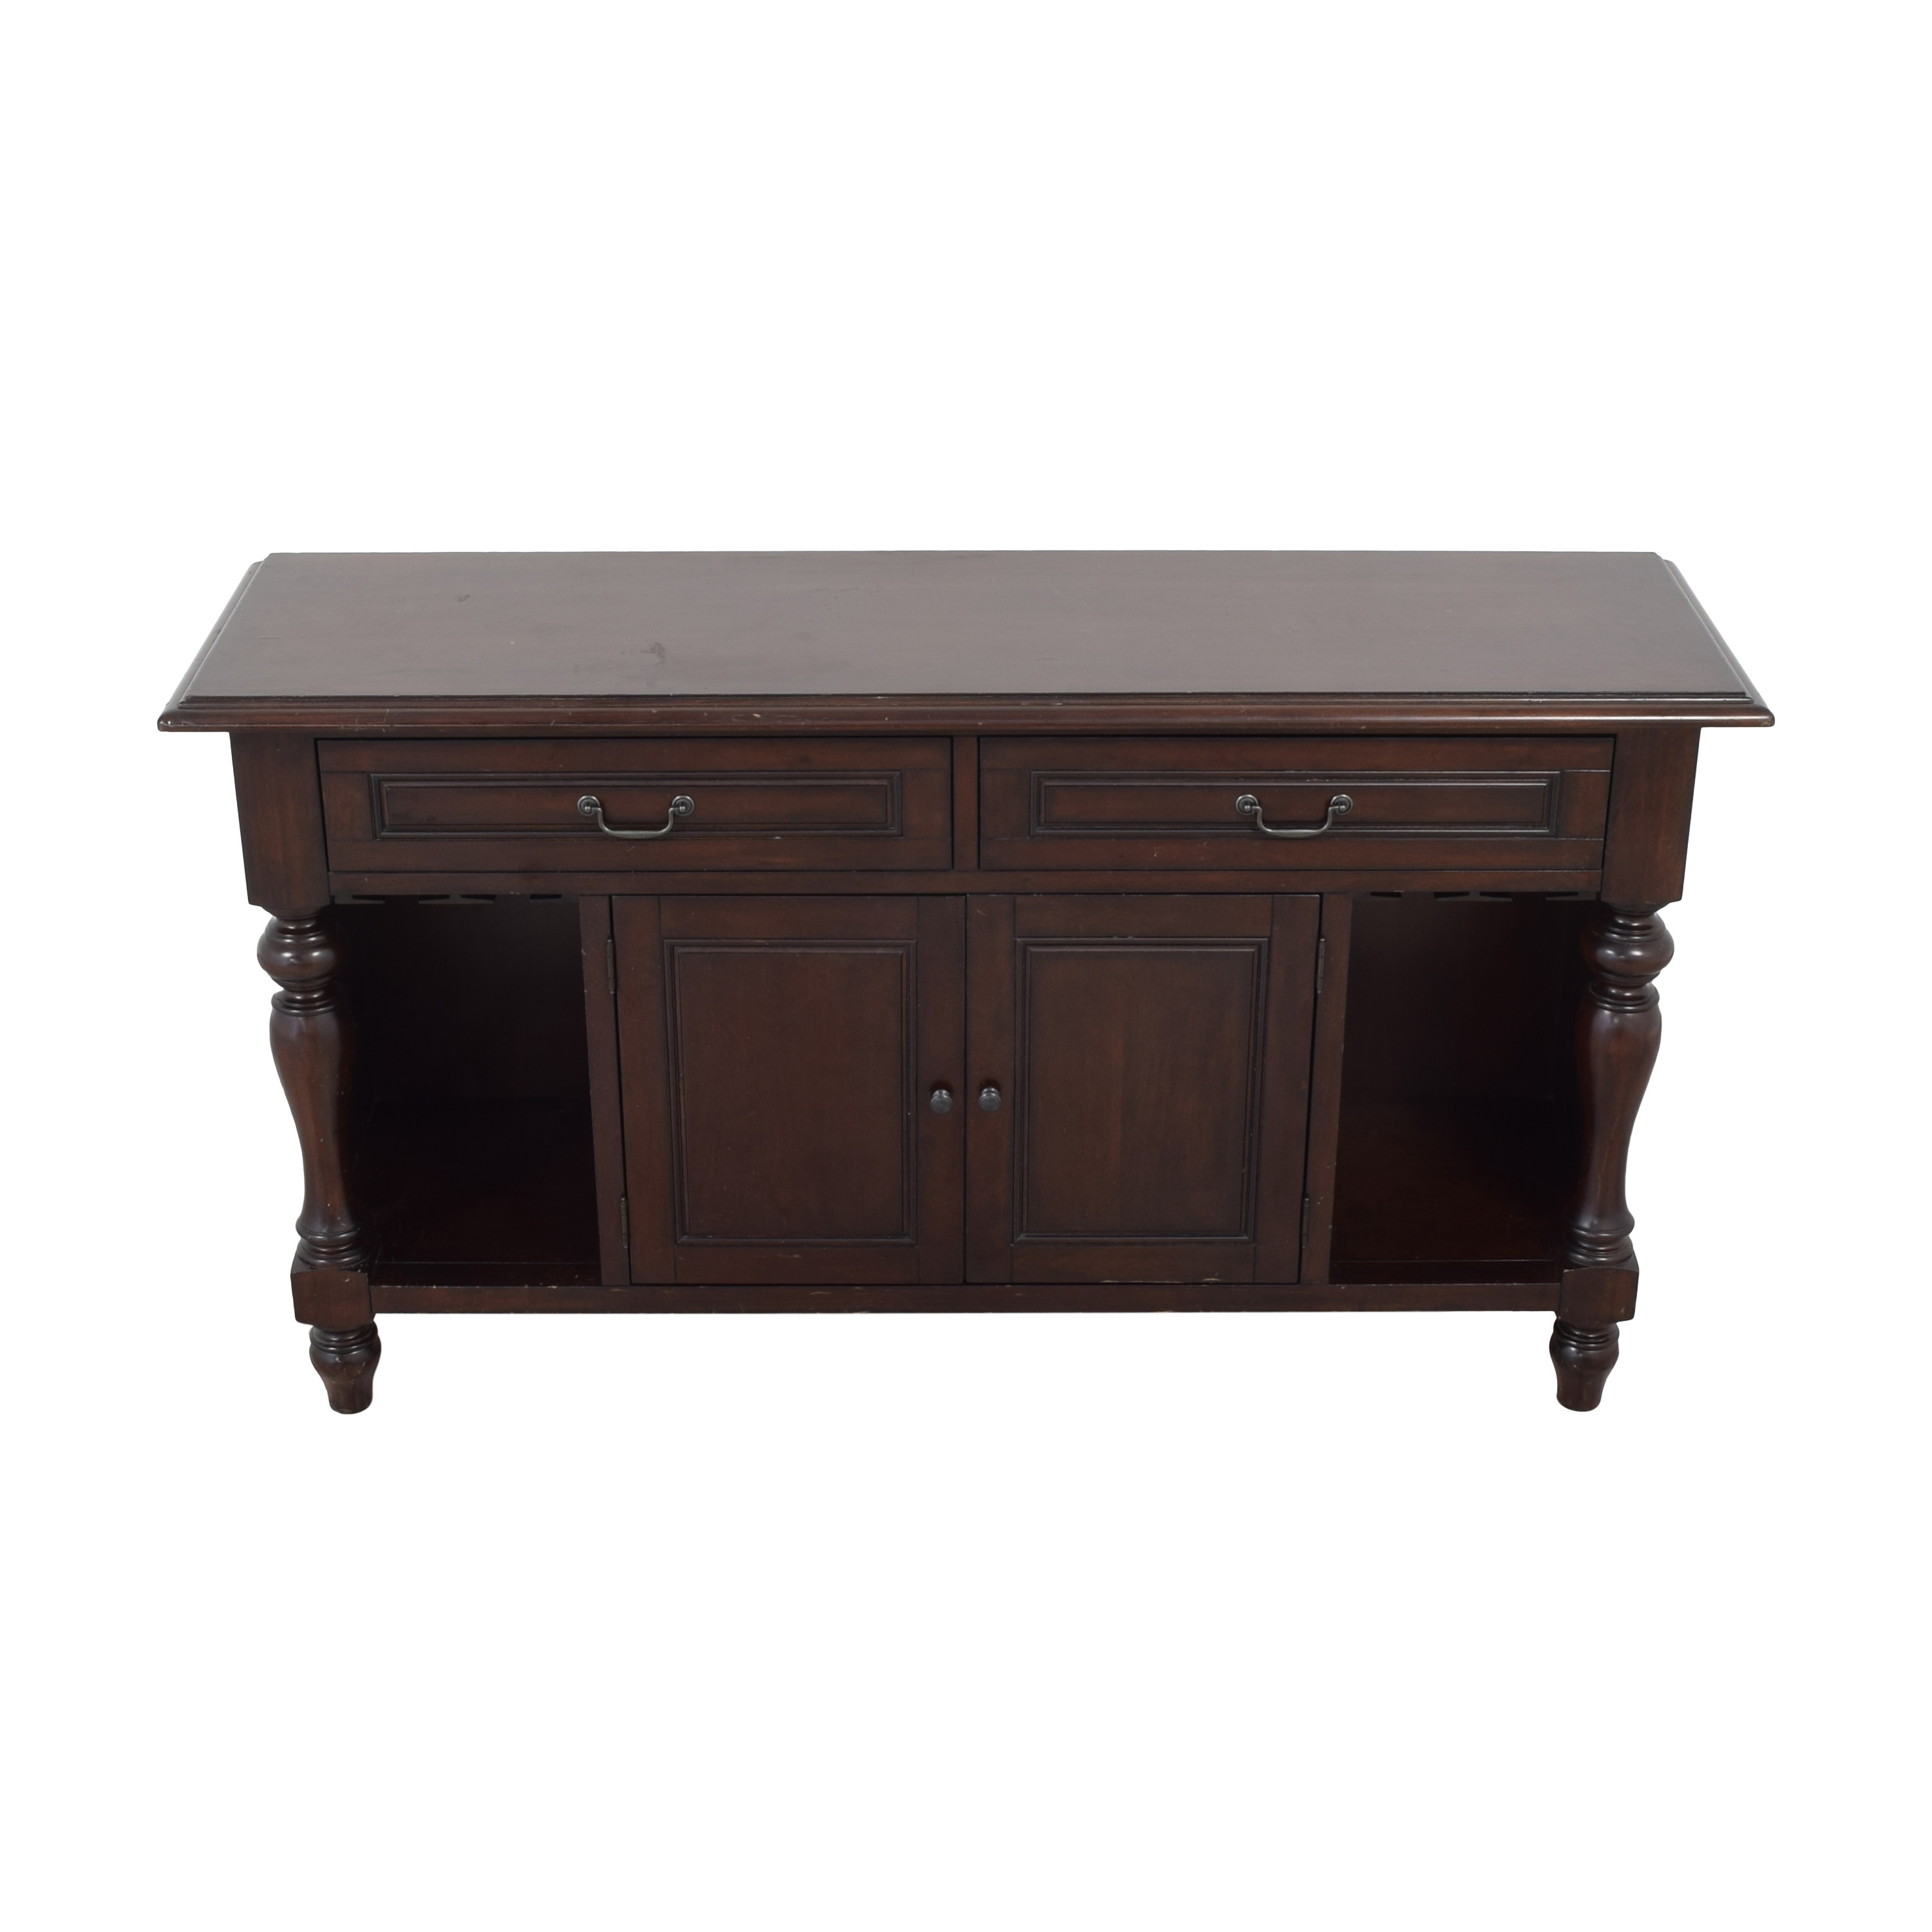 Pottery Barn Pottery Barn Sideboard Buffet Cabinet second hand